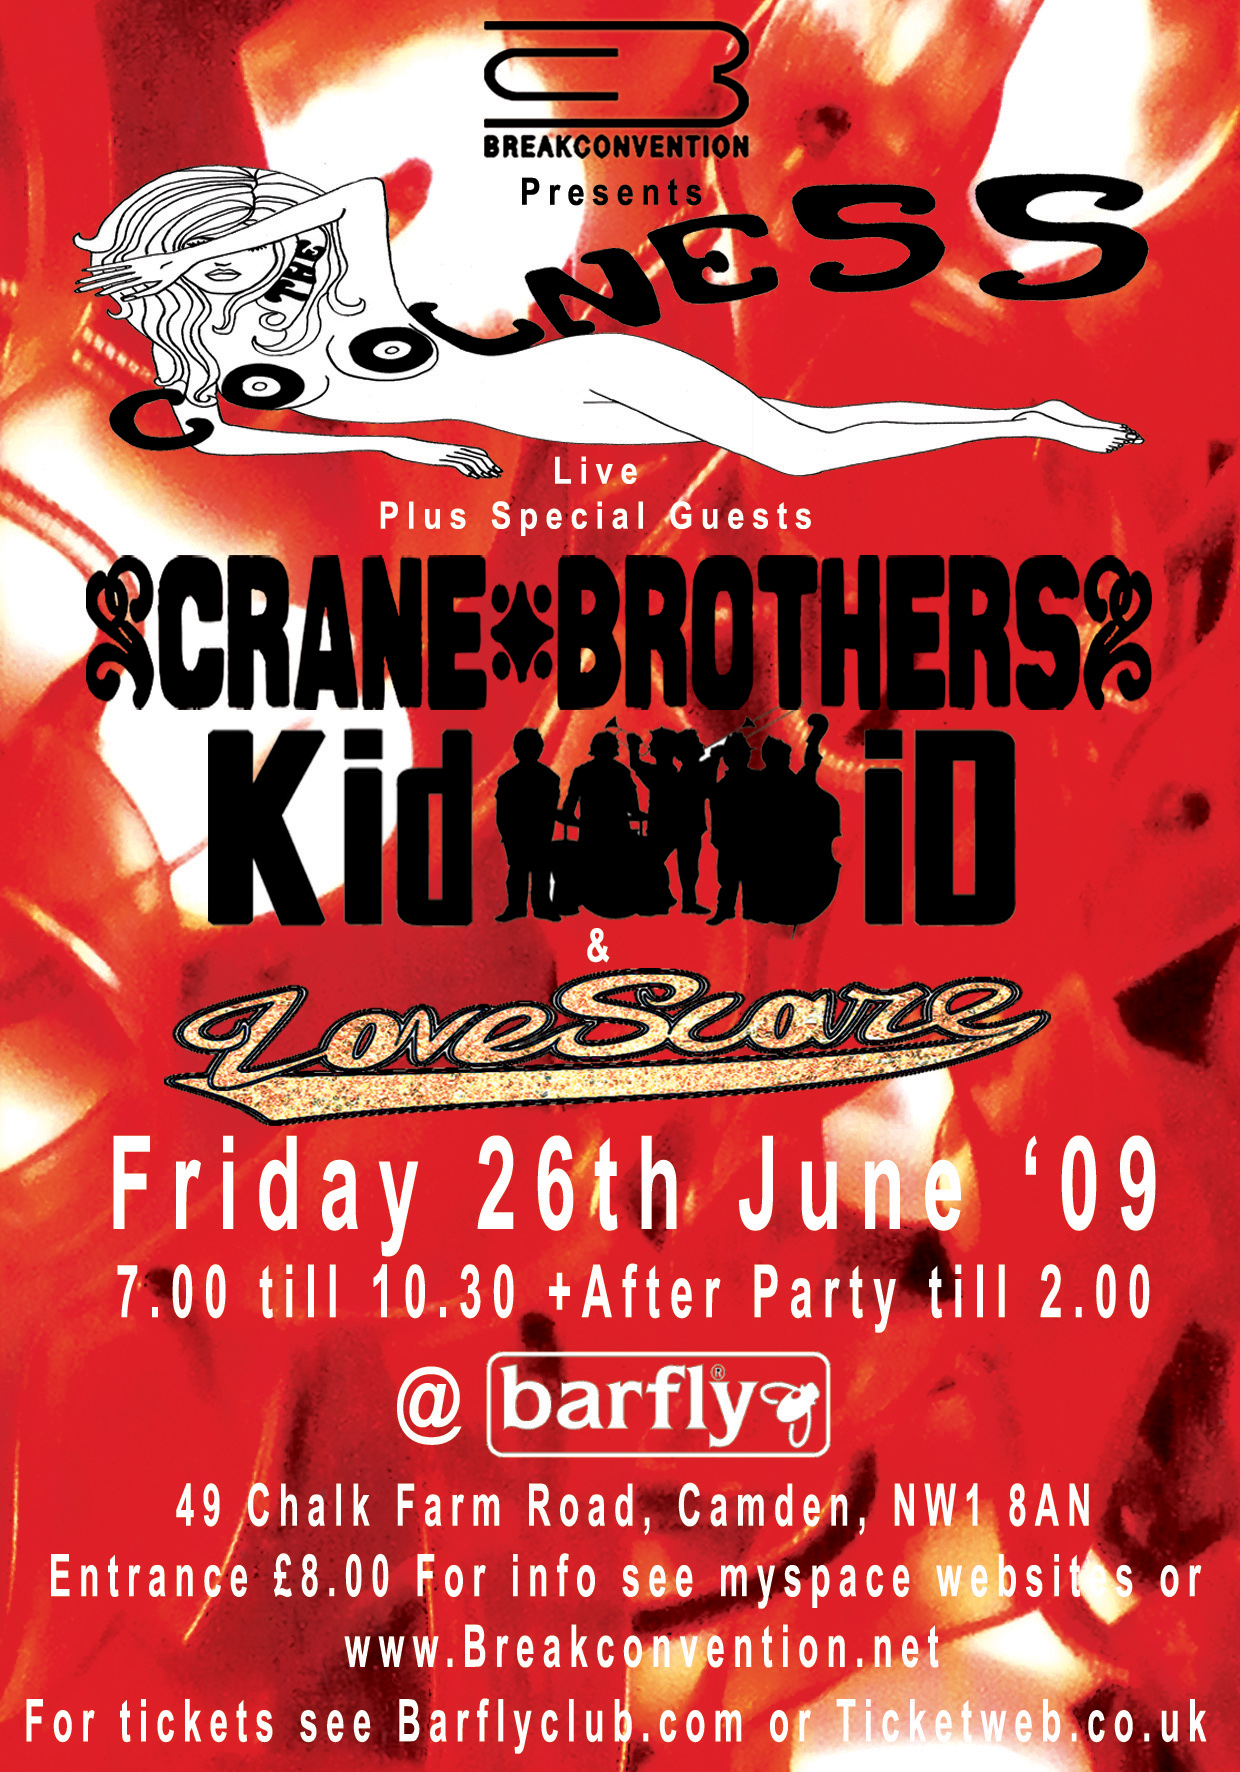 Barfly Poster 26.06.09